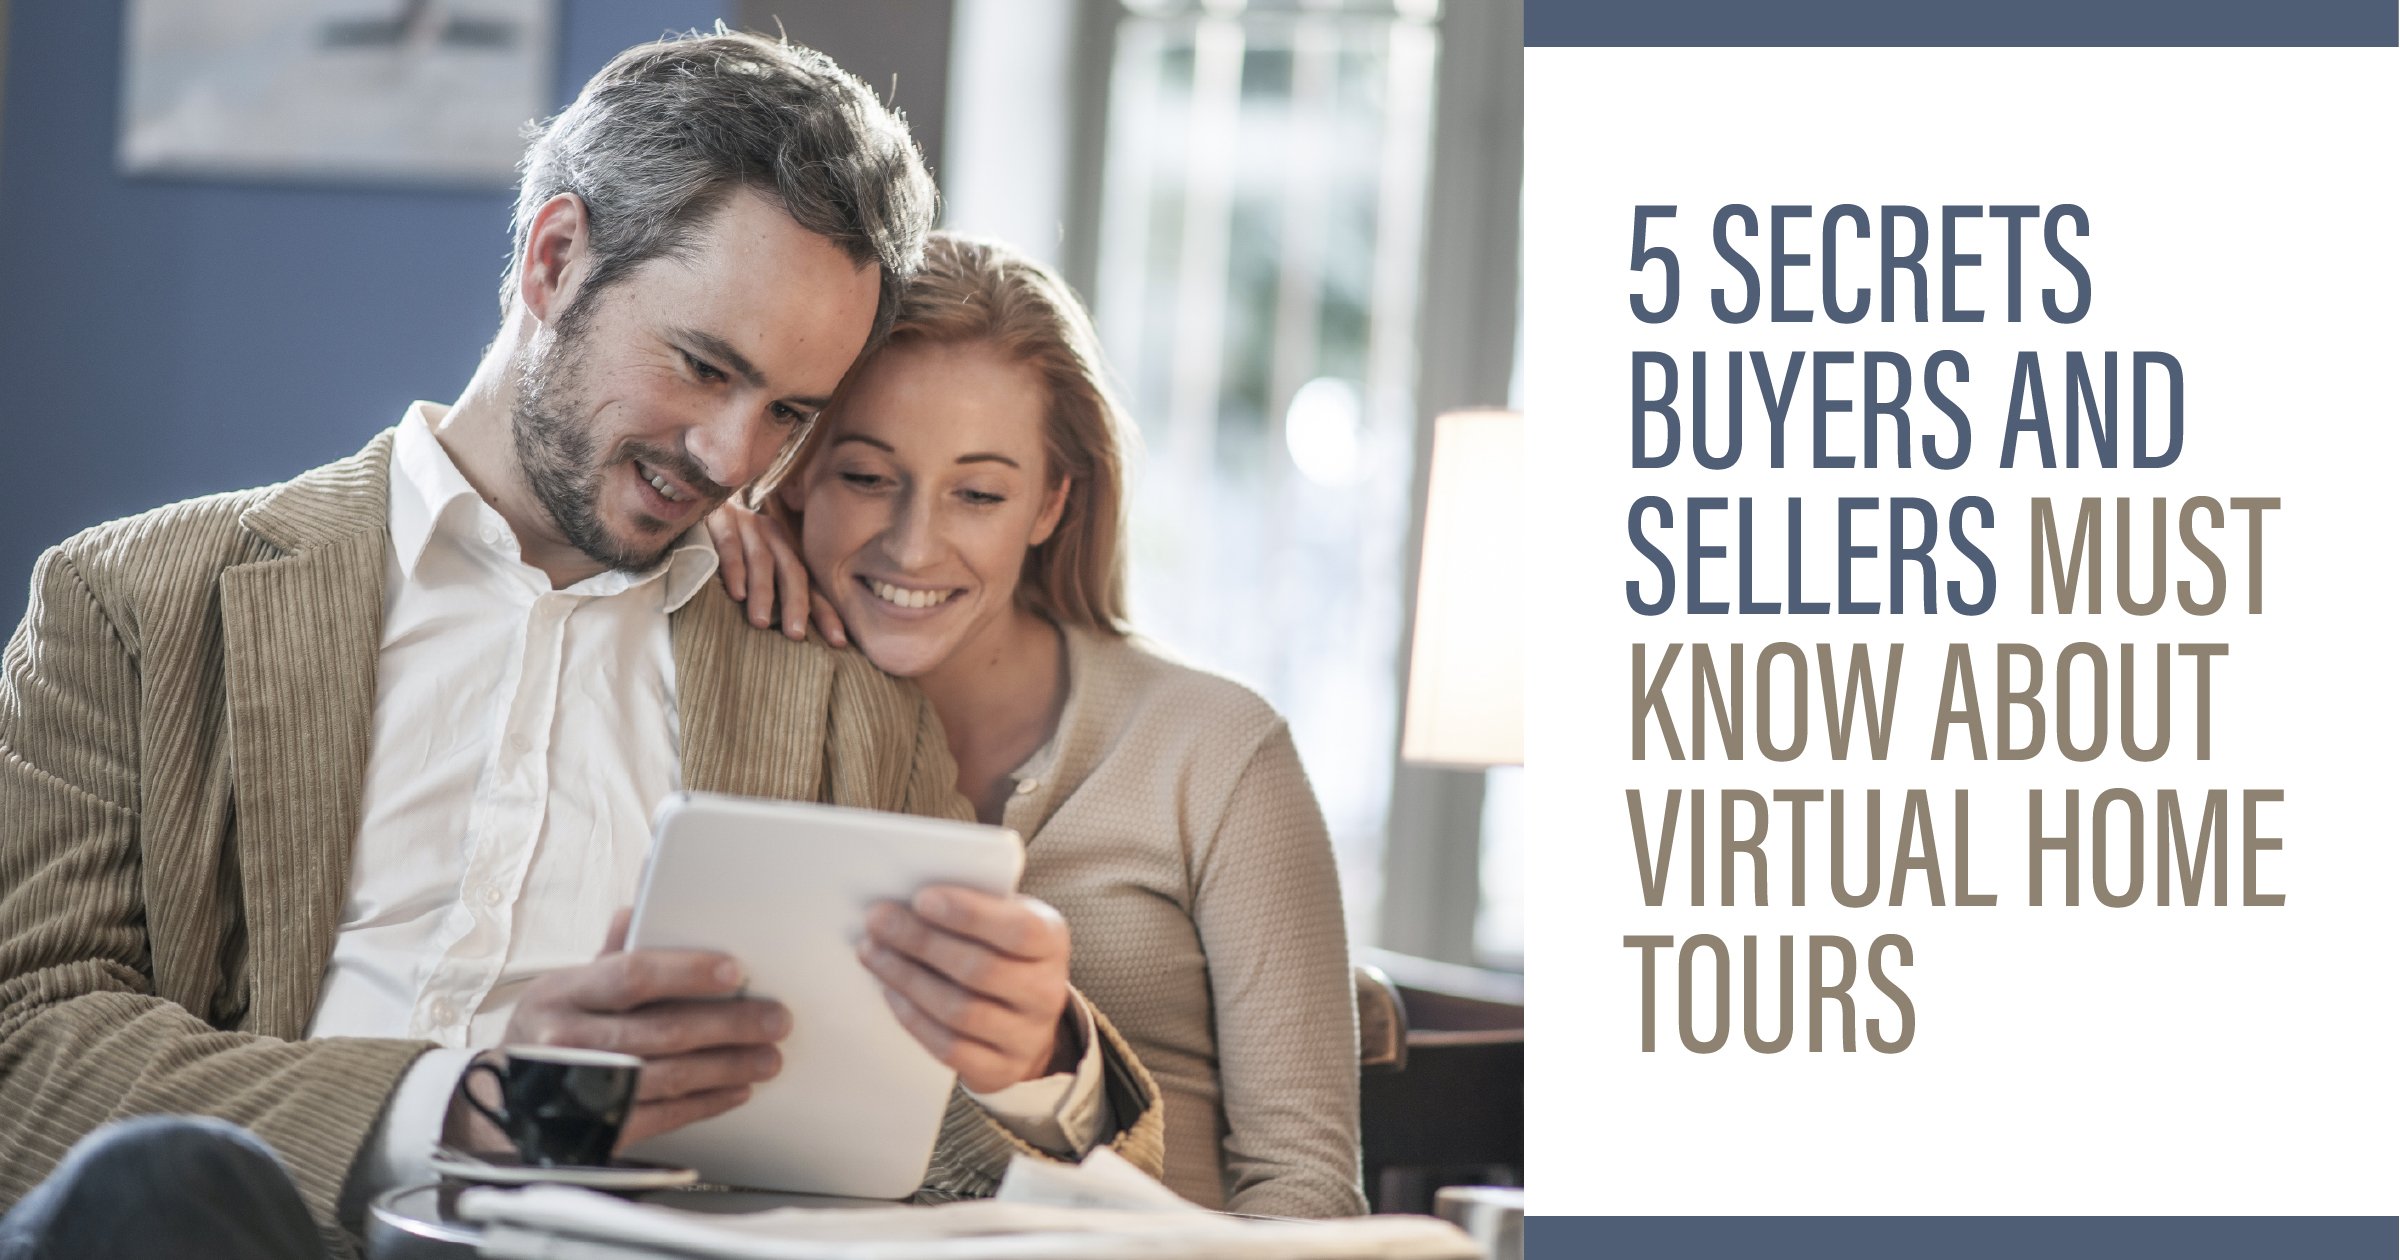 5 Secrets You Must Know About Virtual Home Tours